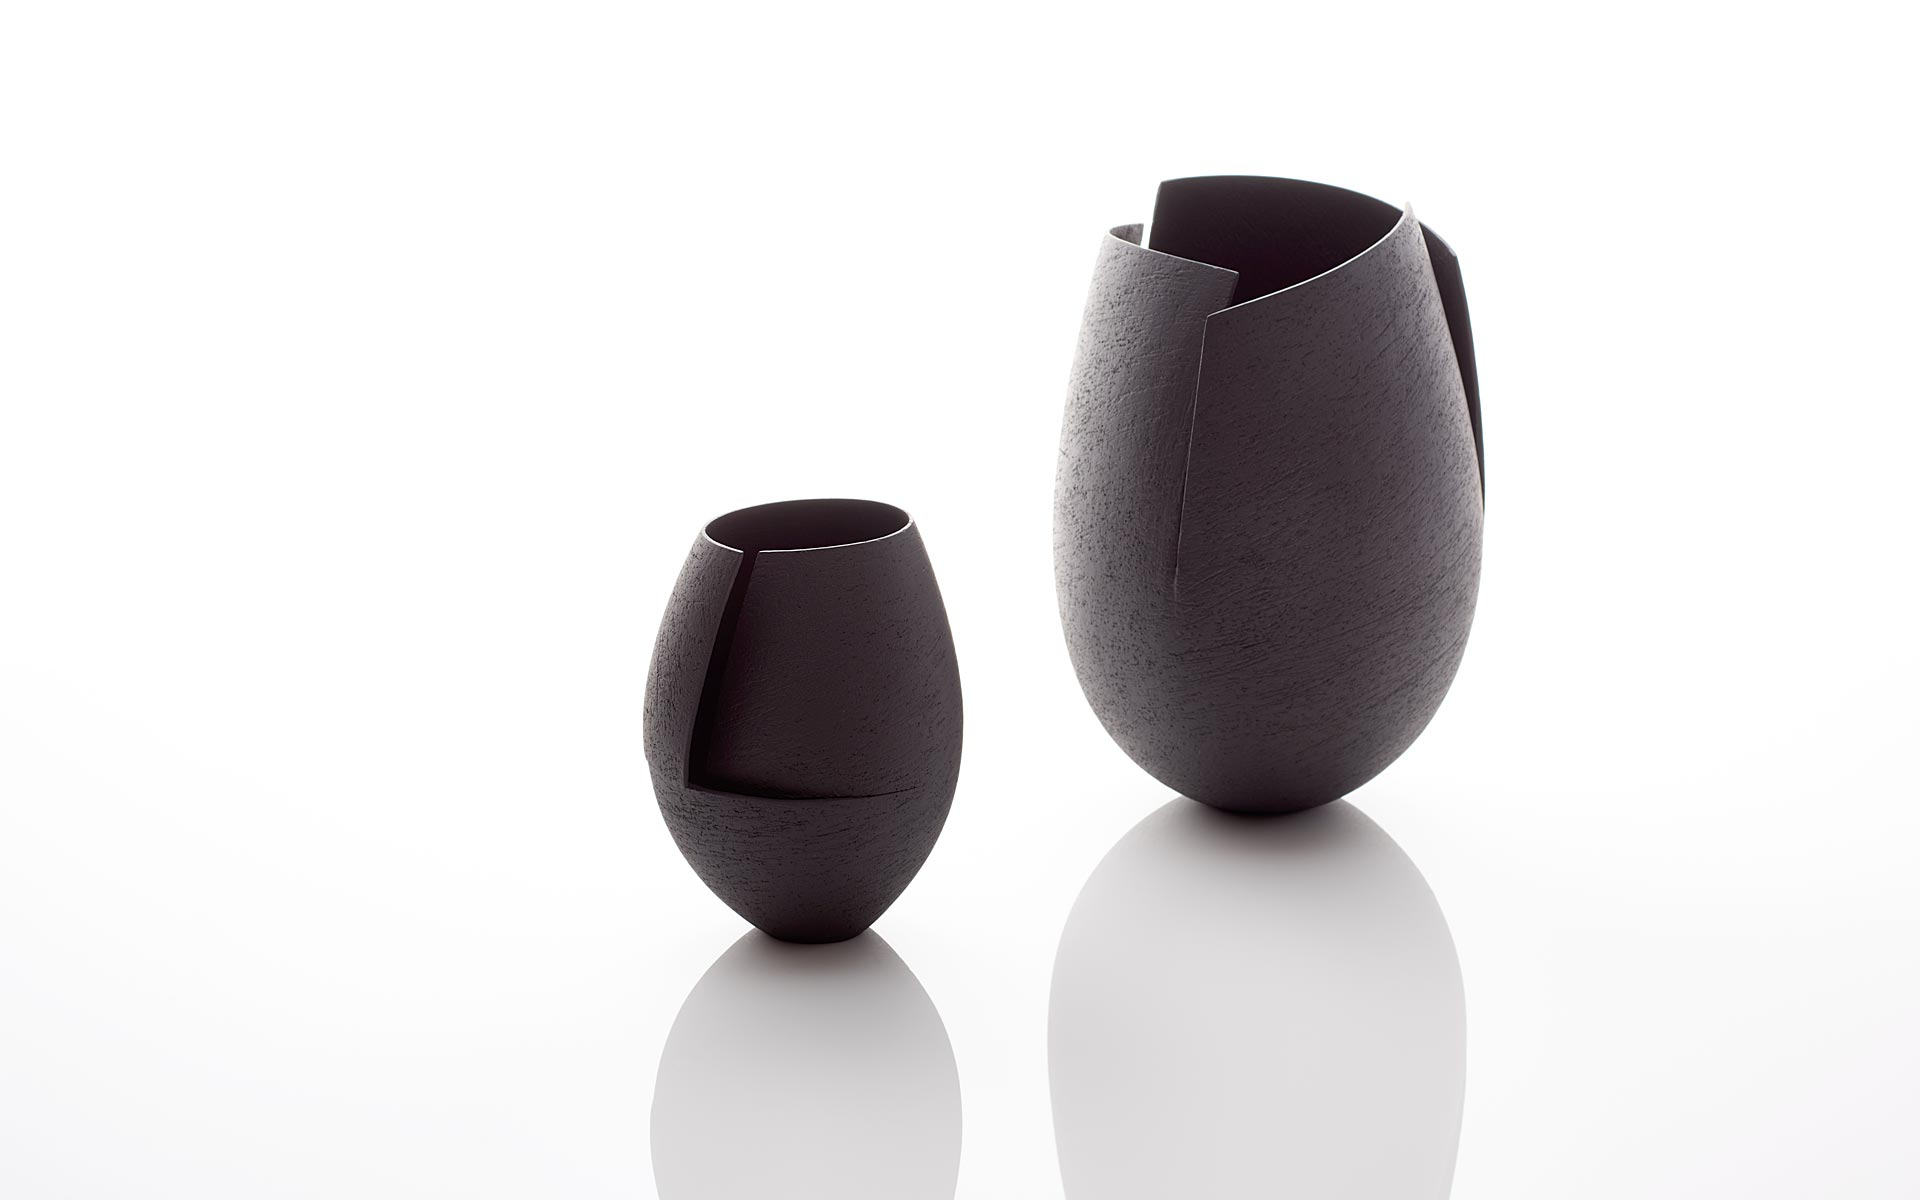 Two Black Cut Vessels